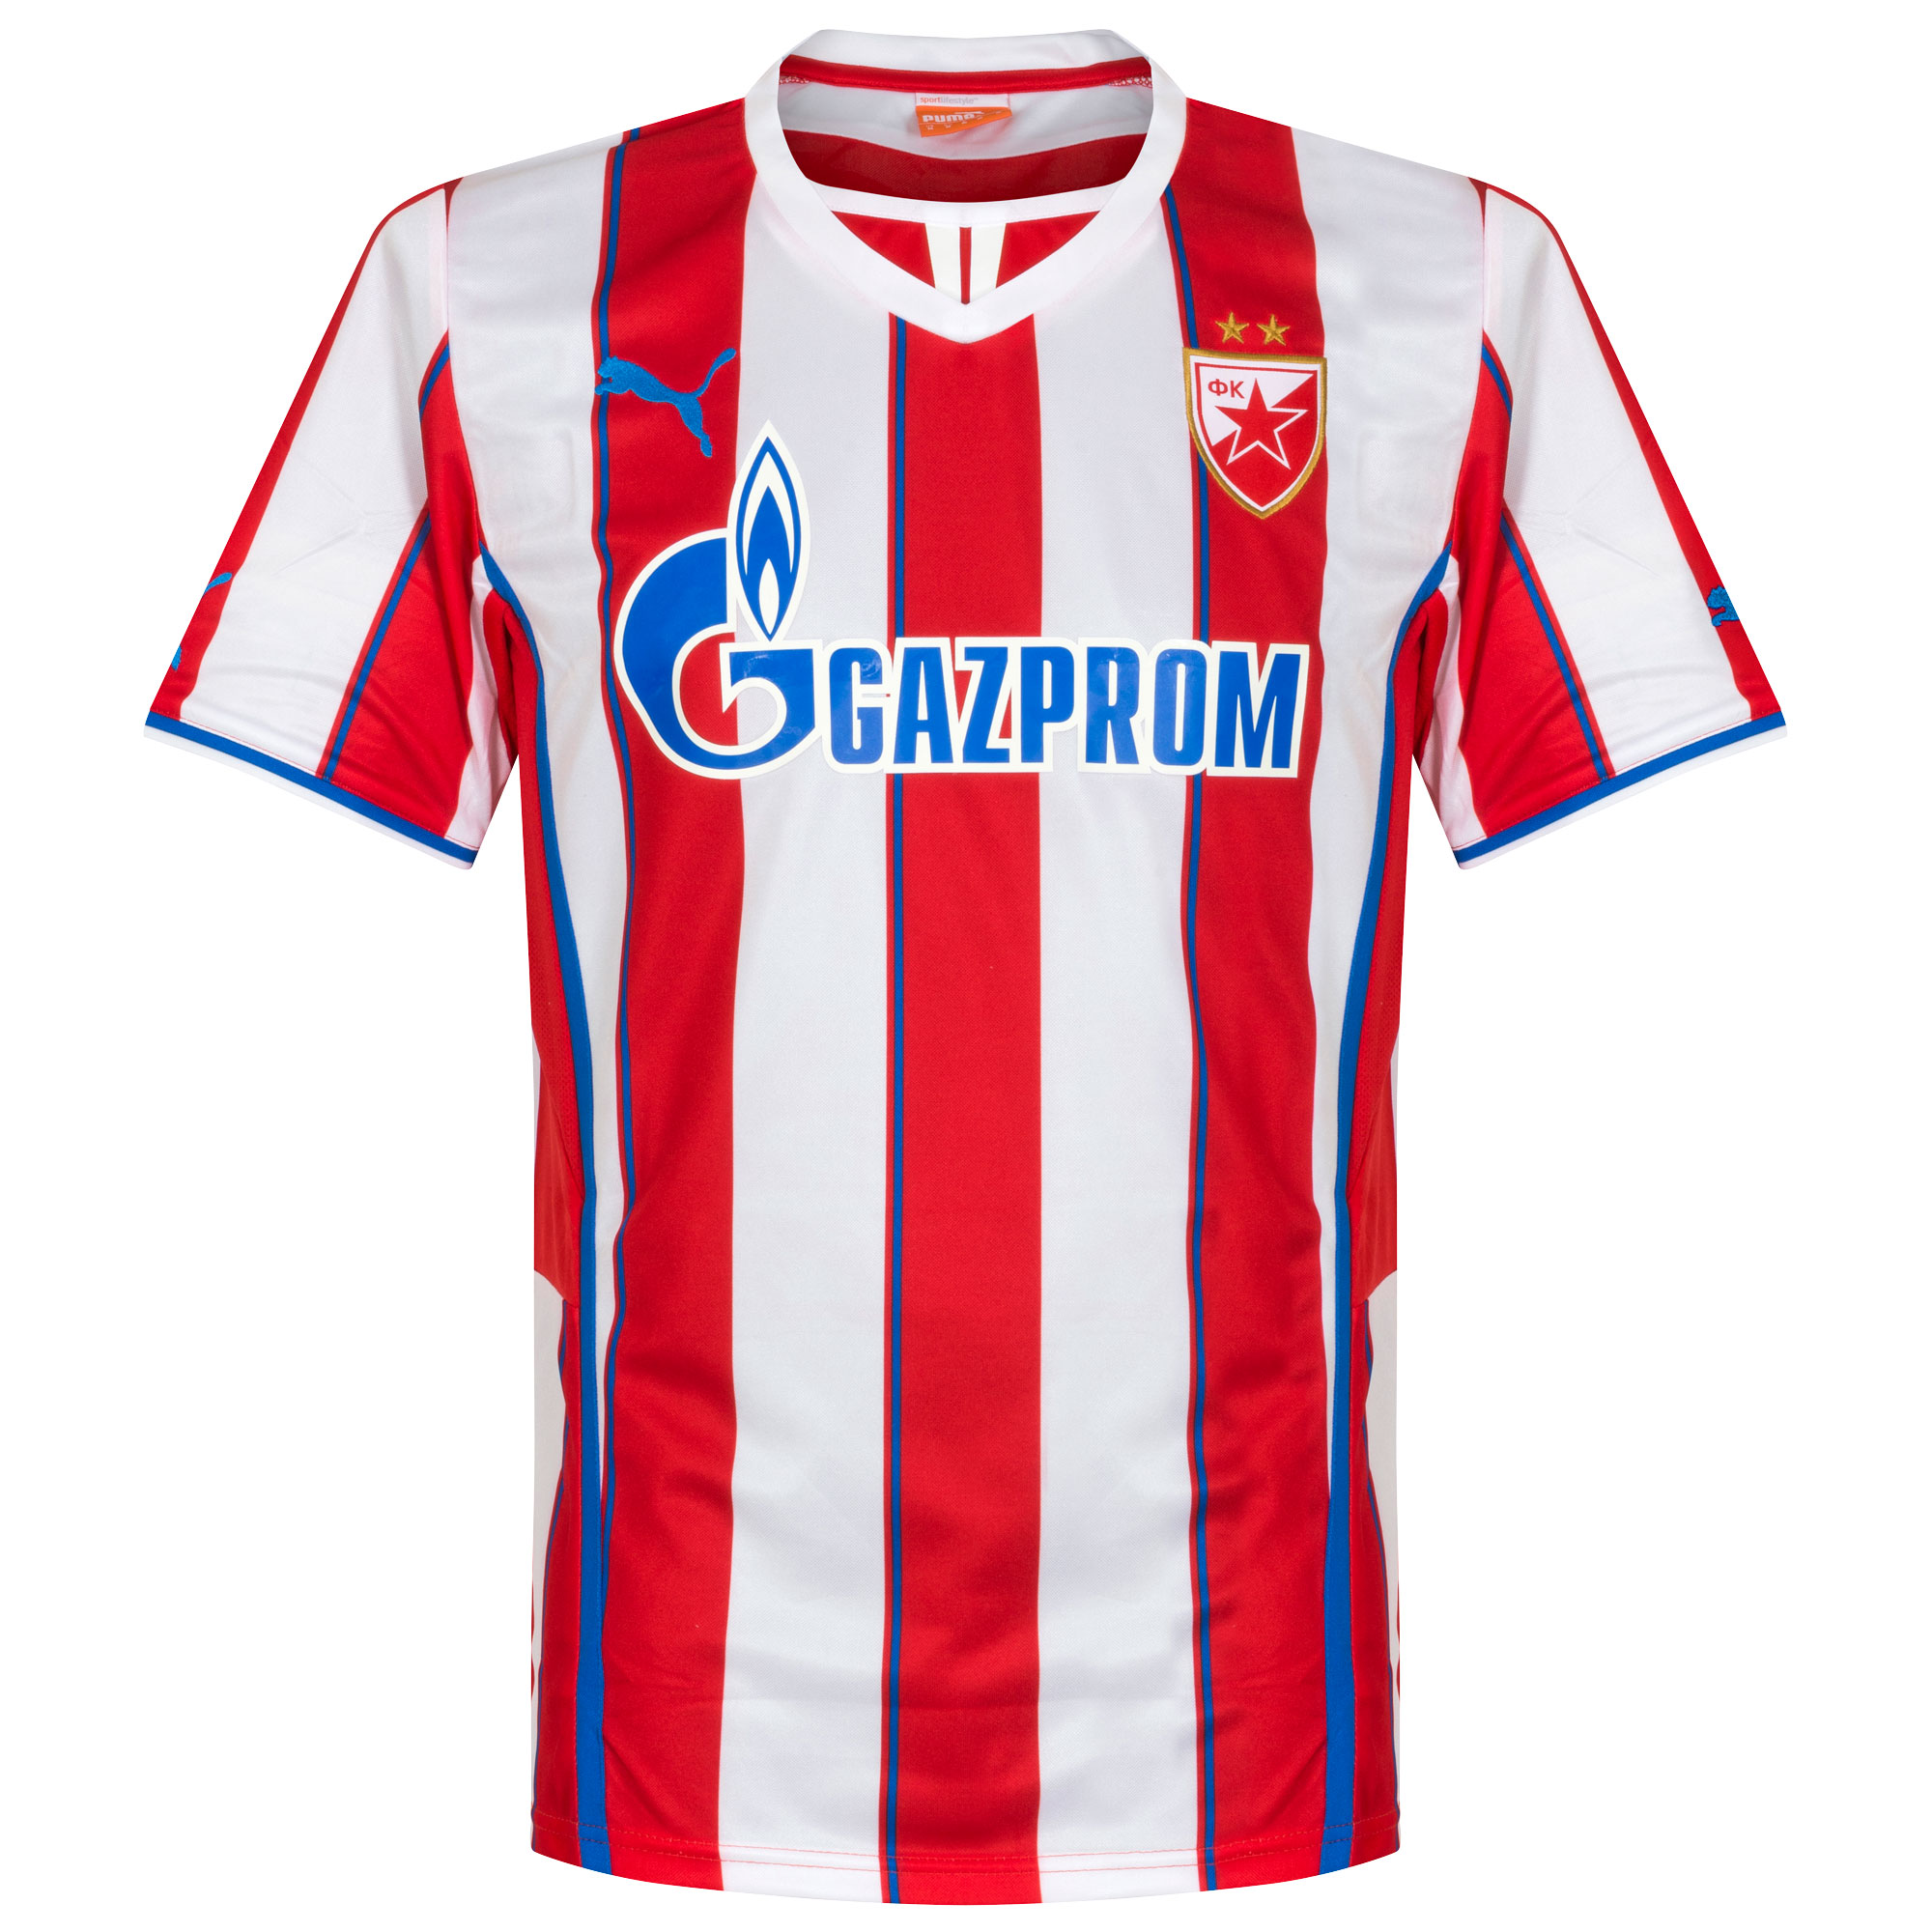 aa8e4c3526f Red Star Belgrade Home Shirt 2013 2014 - Authentic retro and classic  vintage Juventus football shirts